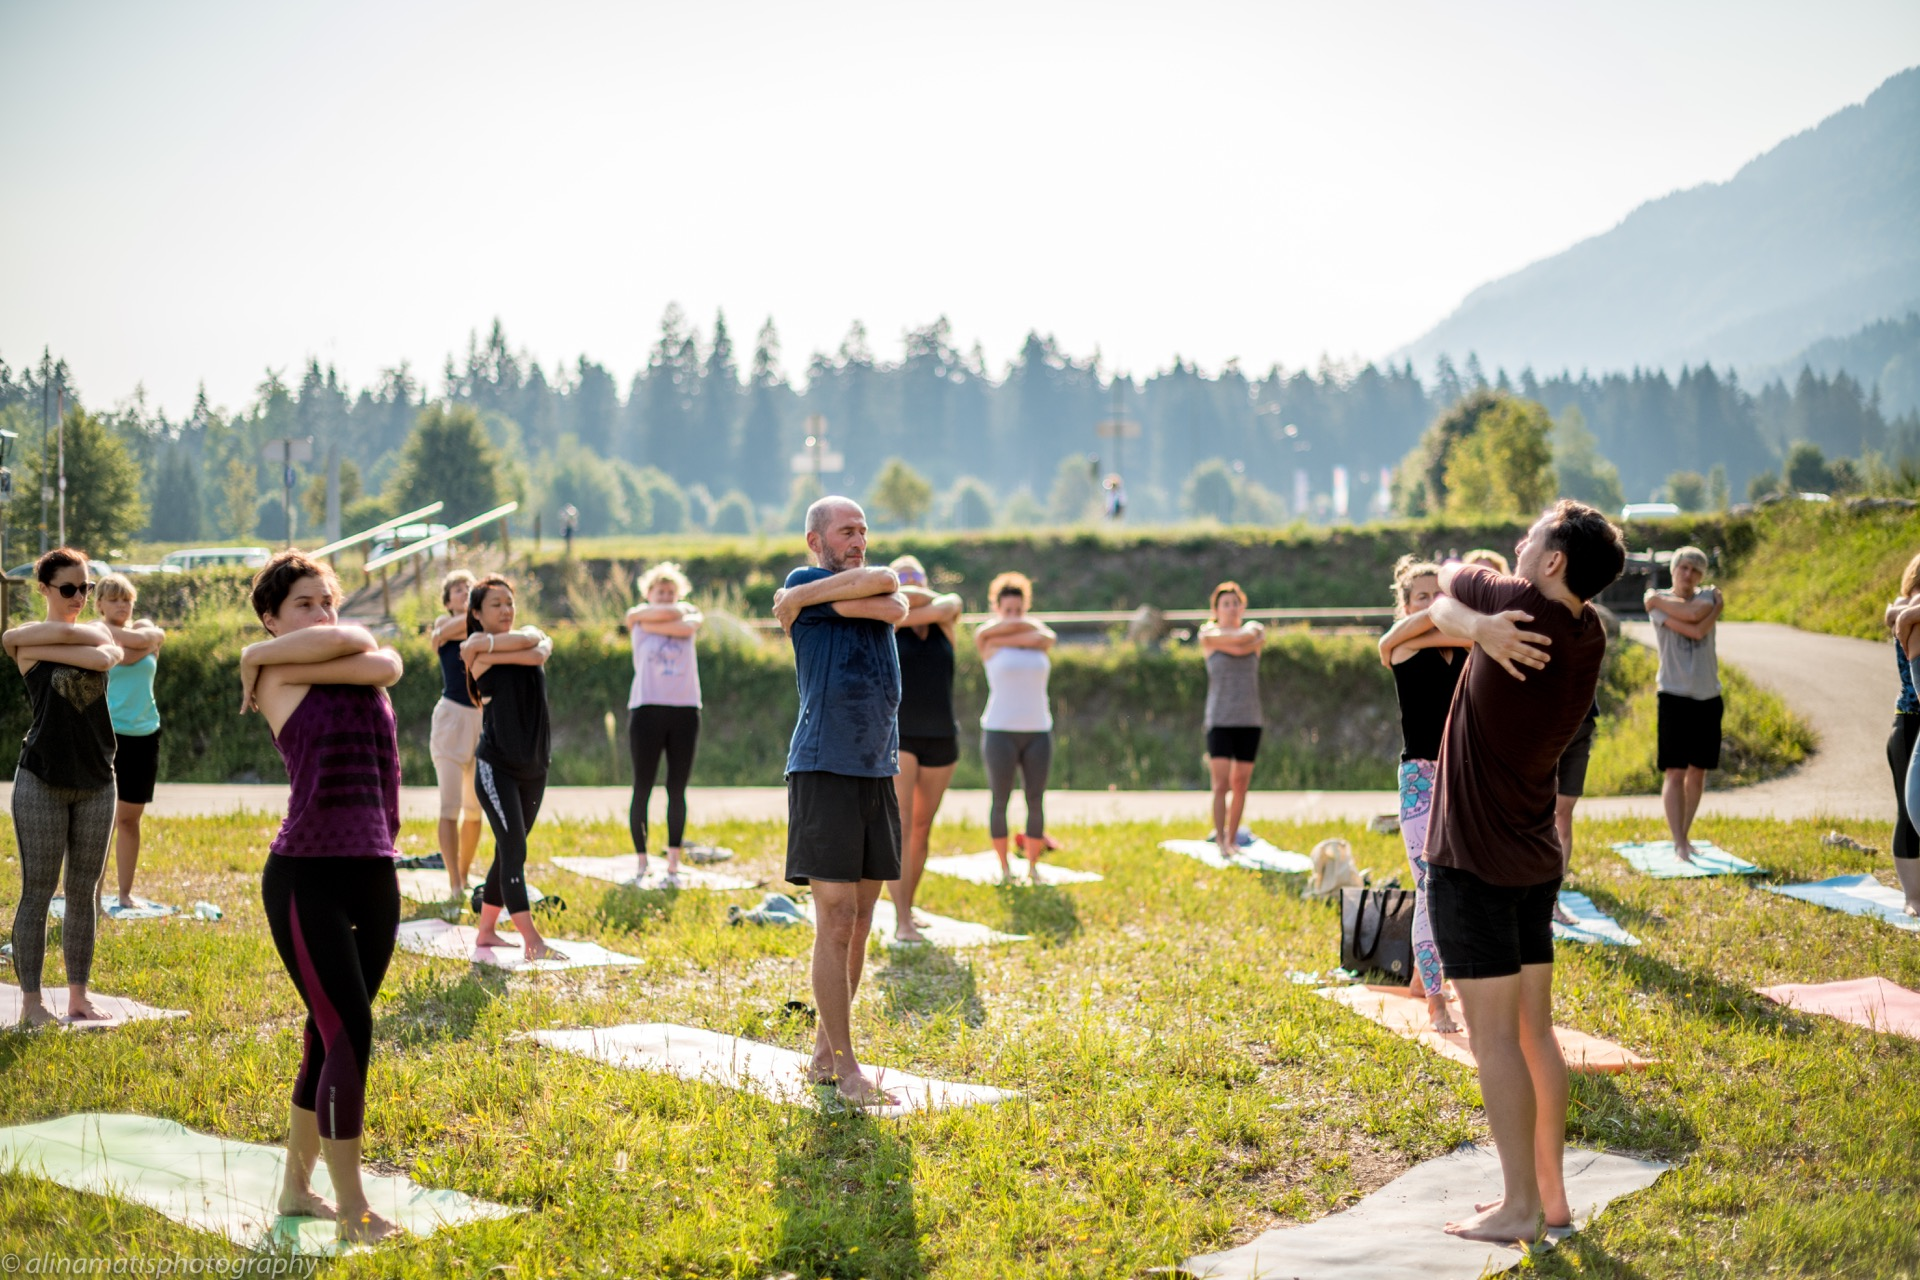 Hie-Kim-Friends-2018-Yoga-Retreat-Alina-Matis-Photography-121 - Hie Kim Yoga - Yoga Retreat - Yoga Workshops und Reisen